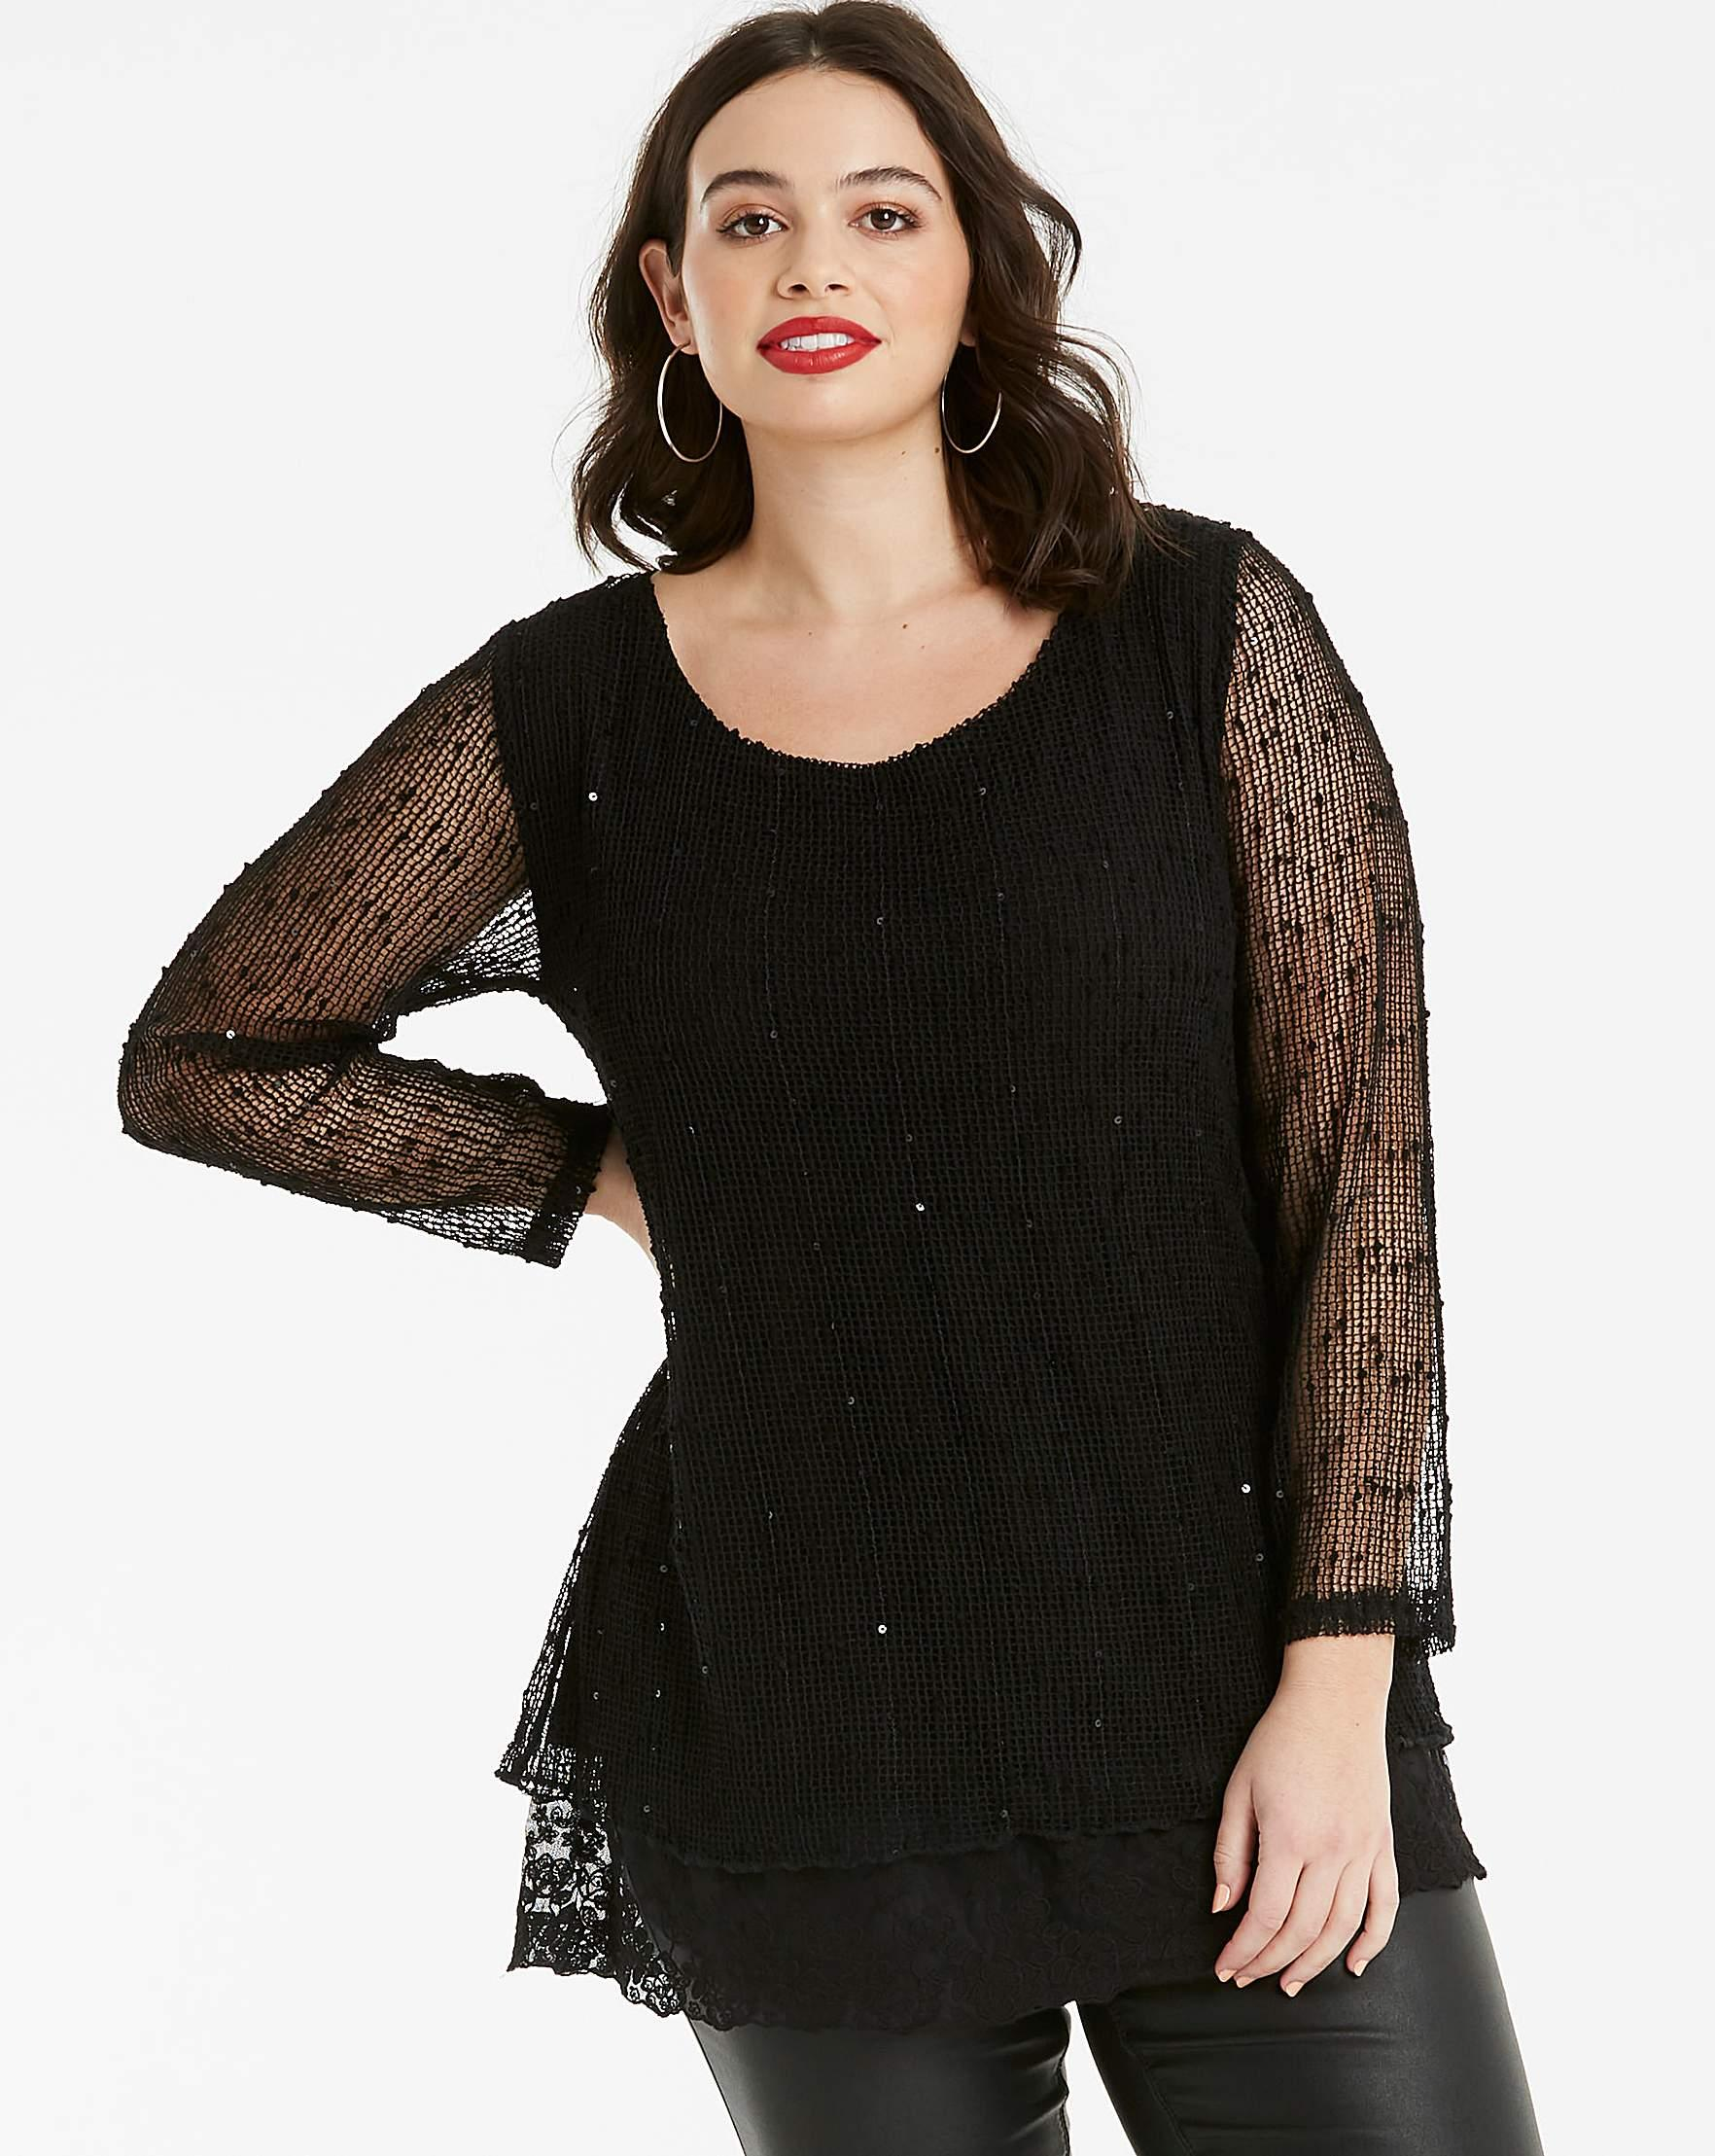 c09e8615aa3b14 Apricot Sequin Knit Top in Black - Lyst